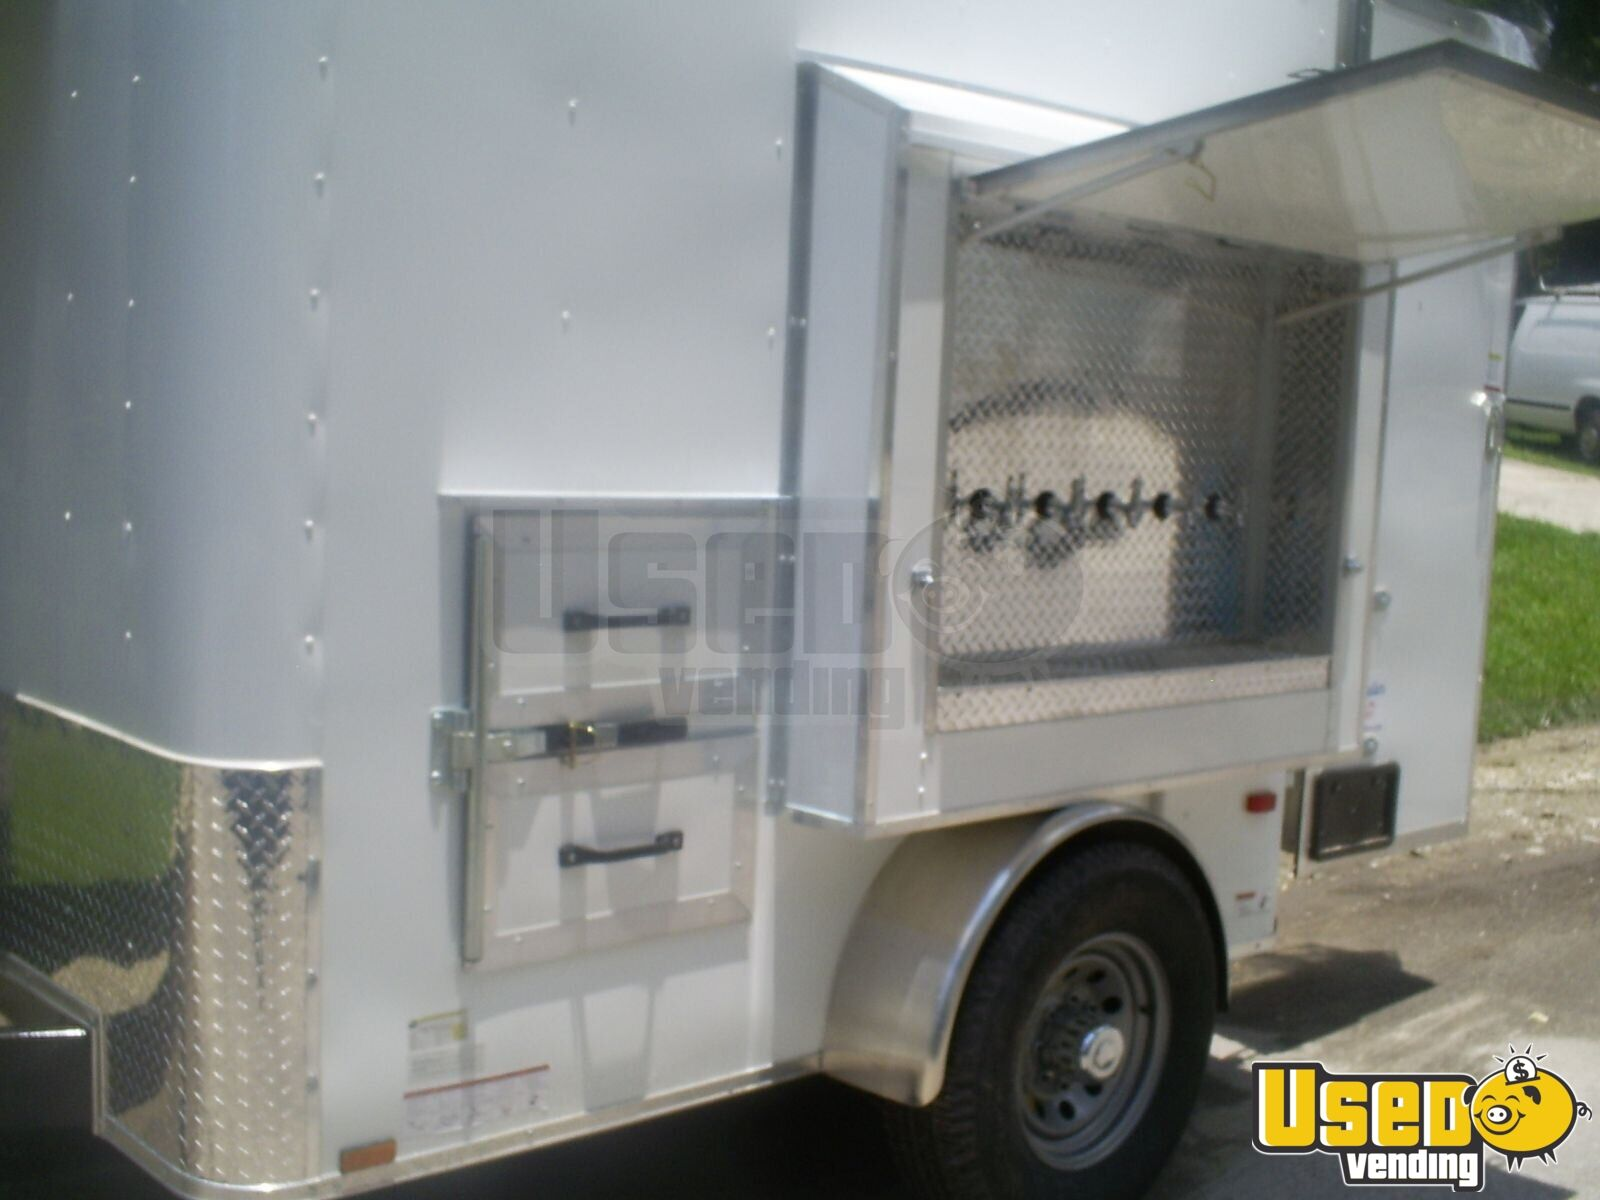 2019 Ctg -712 Ta Other Mobile Business Air Conditioning Florida for Sale - 2